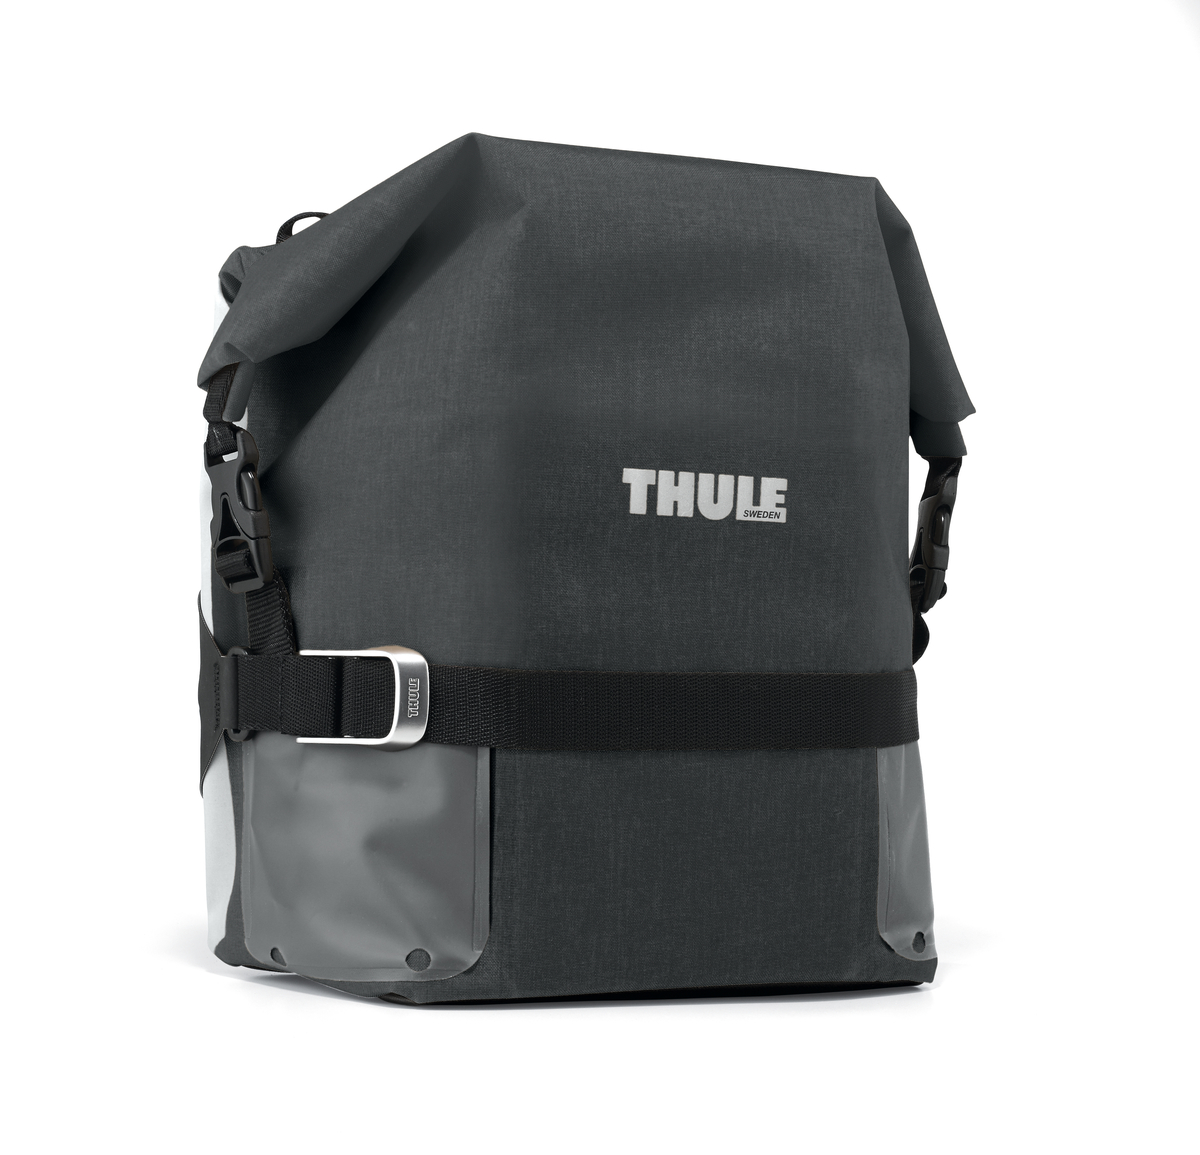 Сумка велосипедная Thule Small Adventure Touring Pannier, цвет: черный